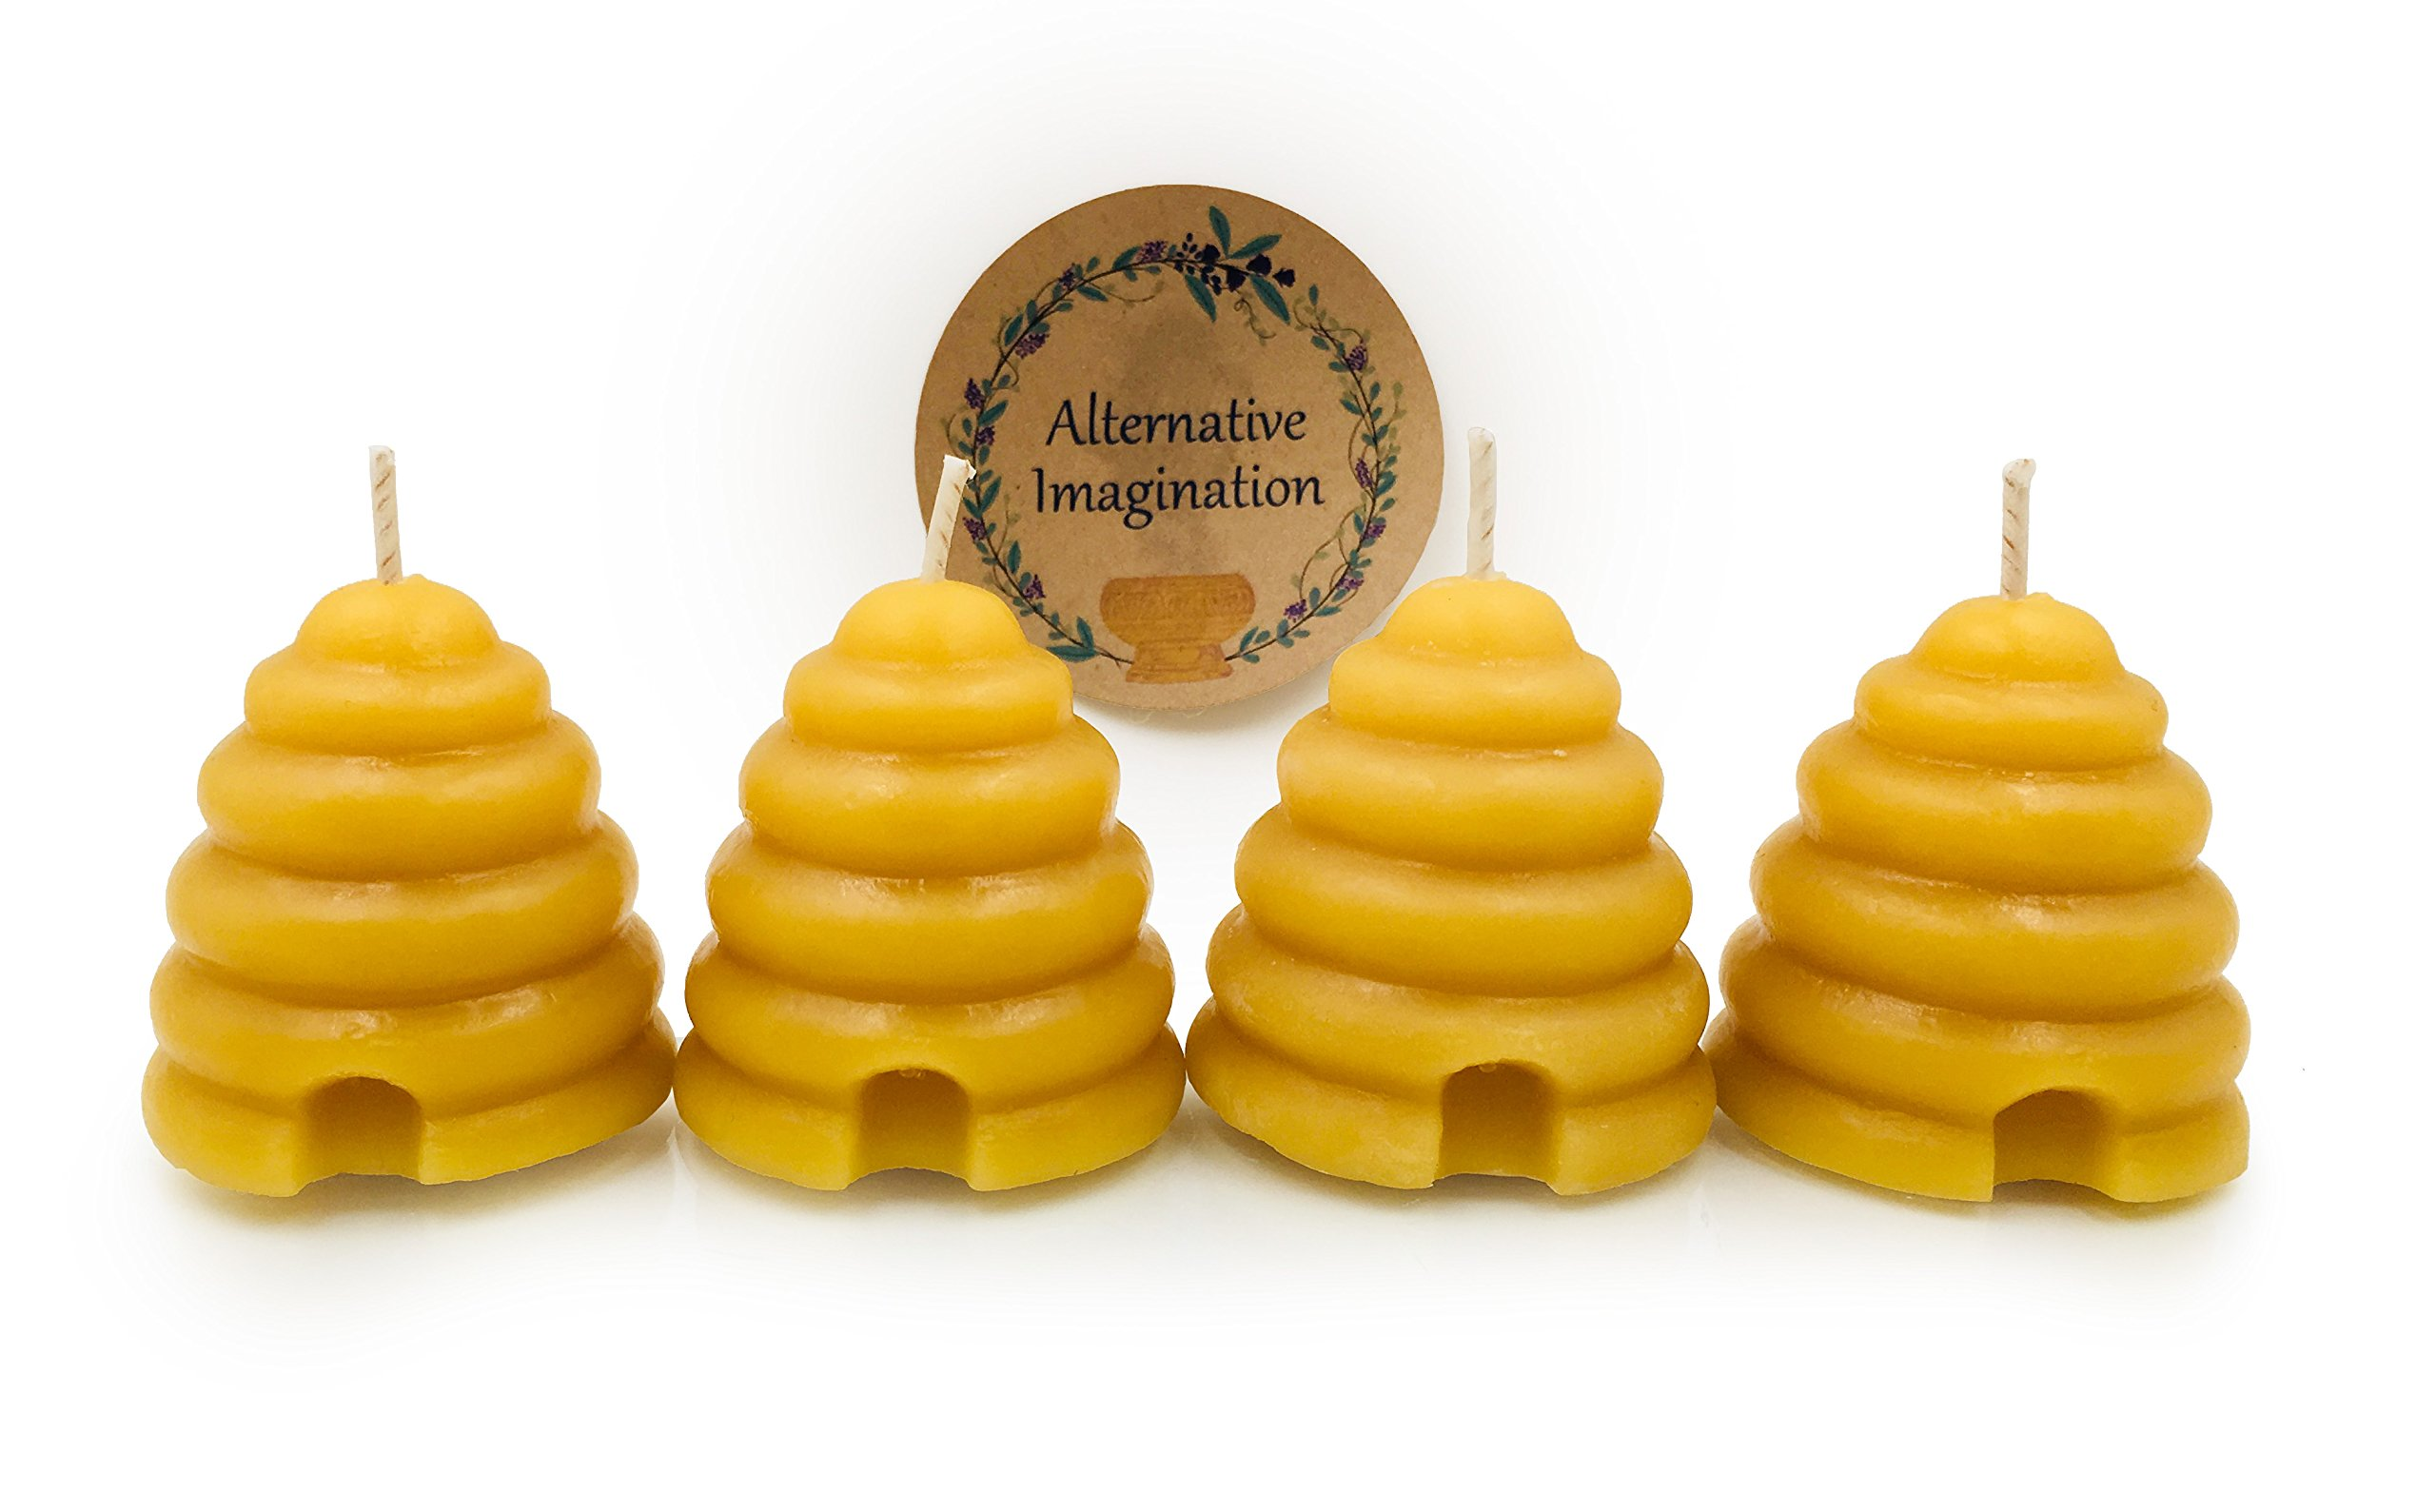 Alternative Imagination Beehive Votive Candle, Hand Poured with 100% Premium Beeswax (Pack of 4)